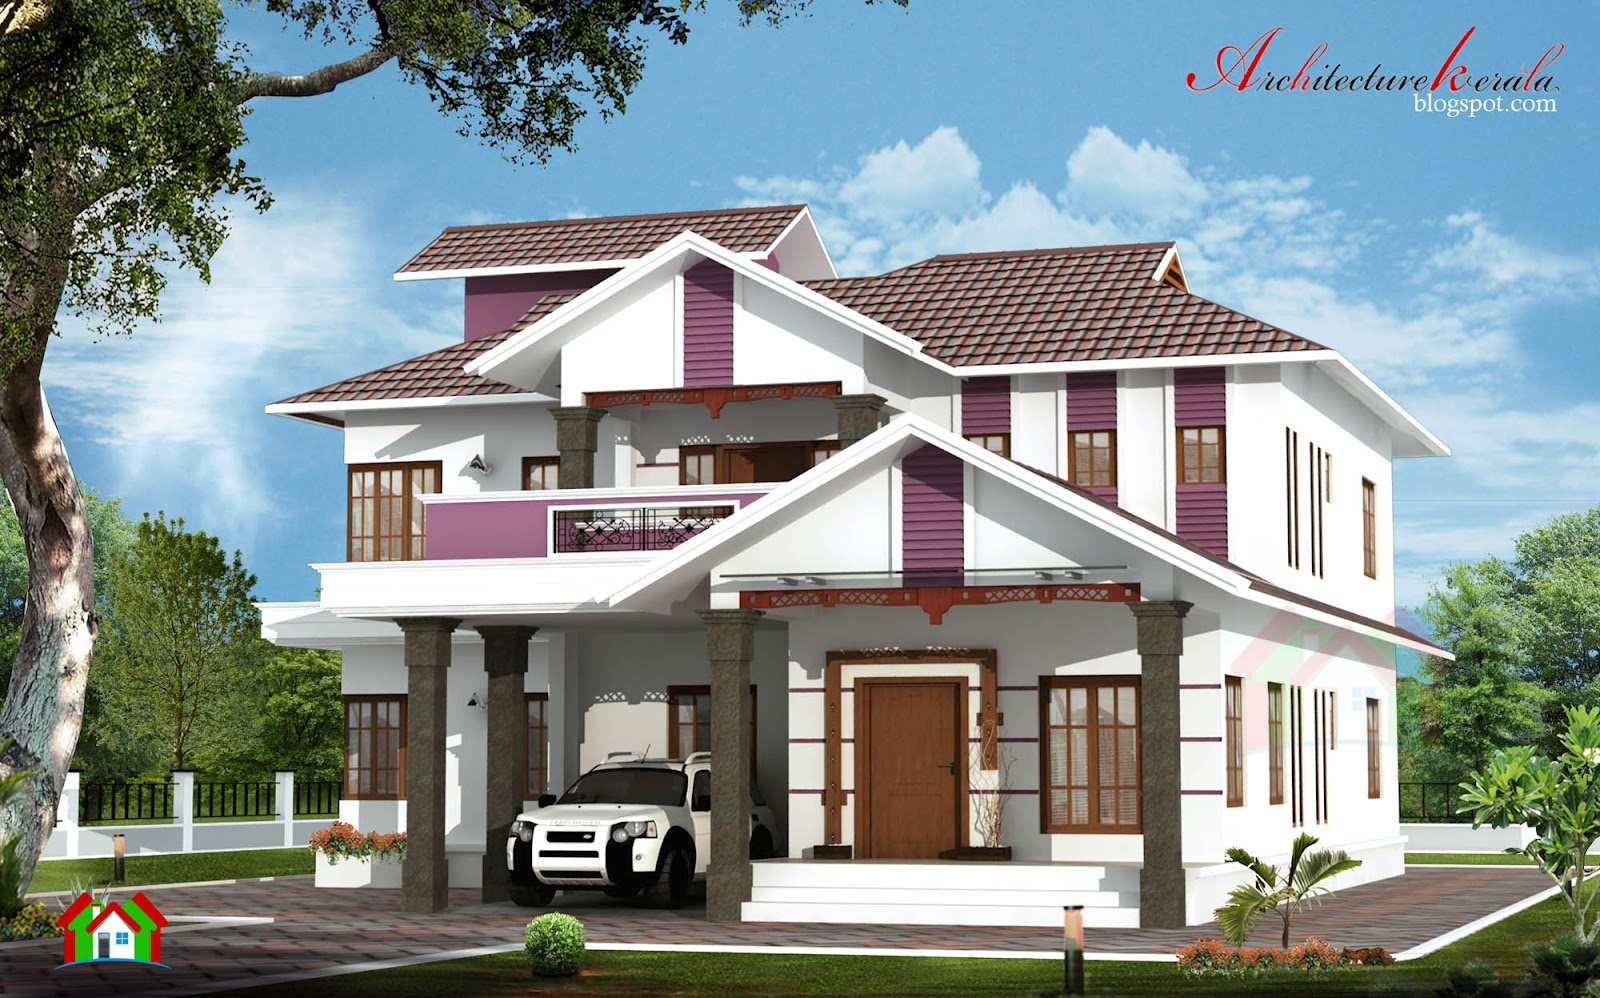 Architecture Kerala 2400 Sq Ft 4 Bhk Kerala House Design